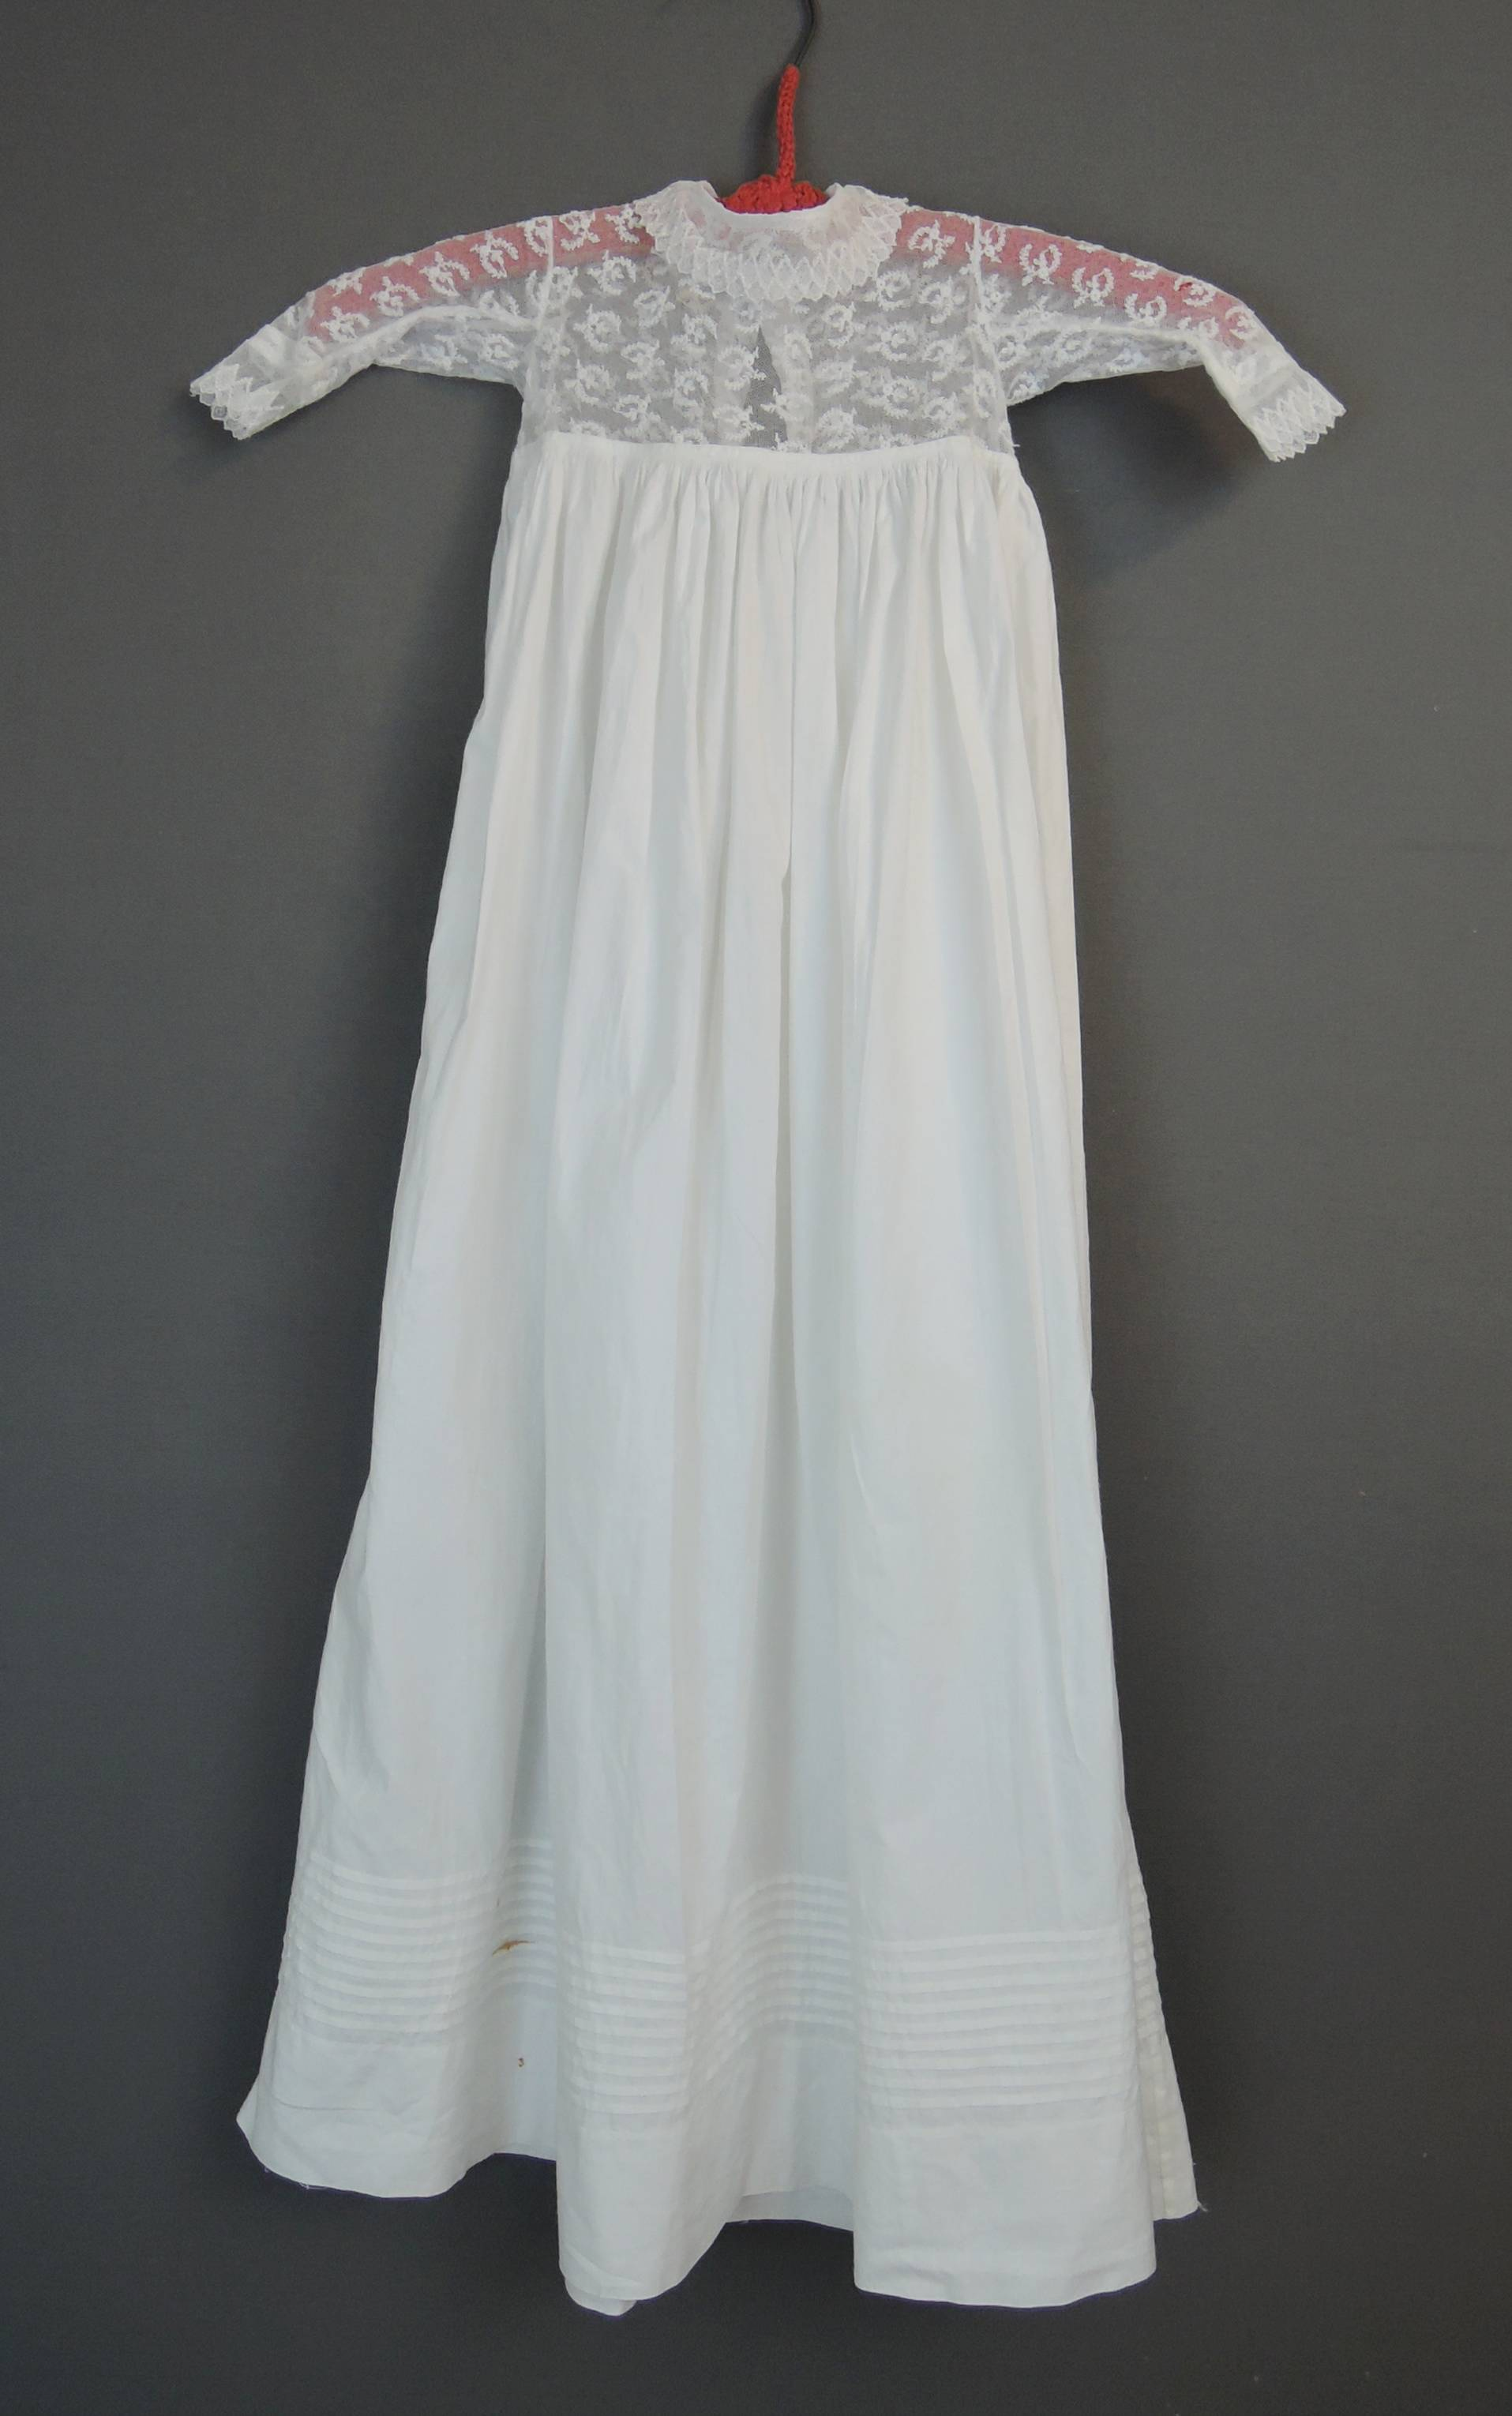 Antique White Cotton Infant Baby Dress, Long Gown with Lace , 18 inch chest